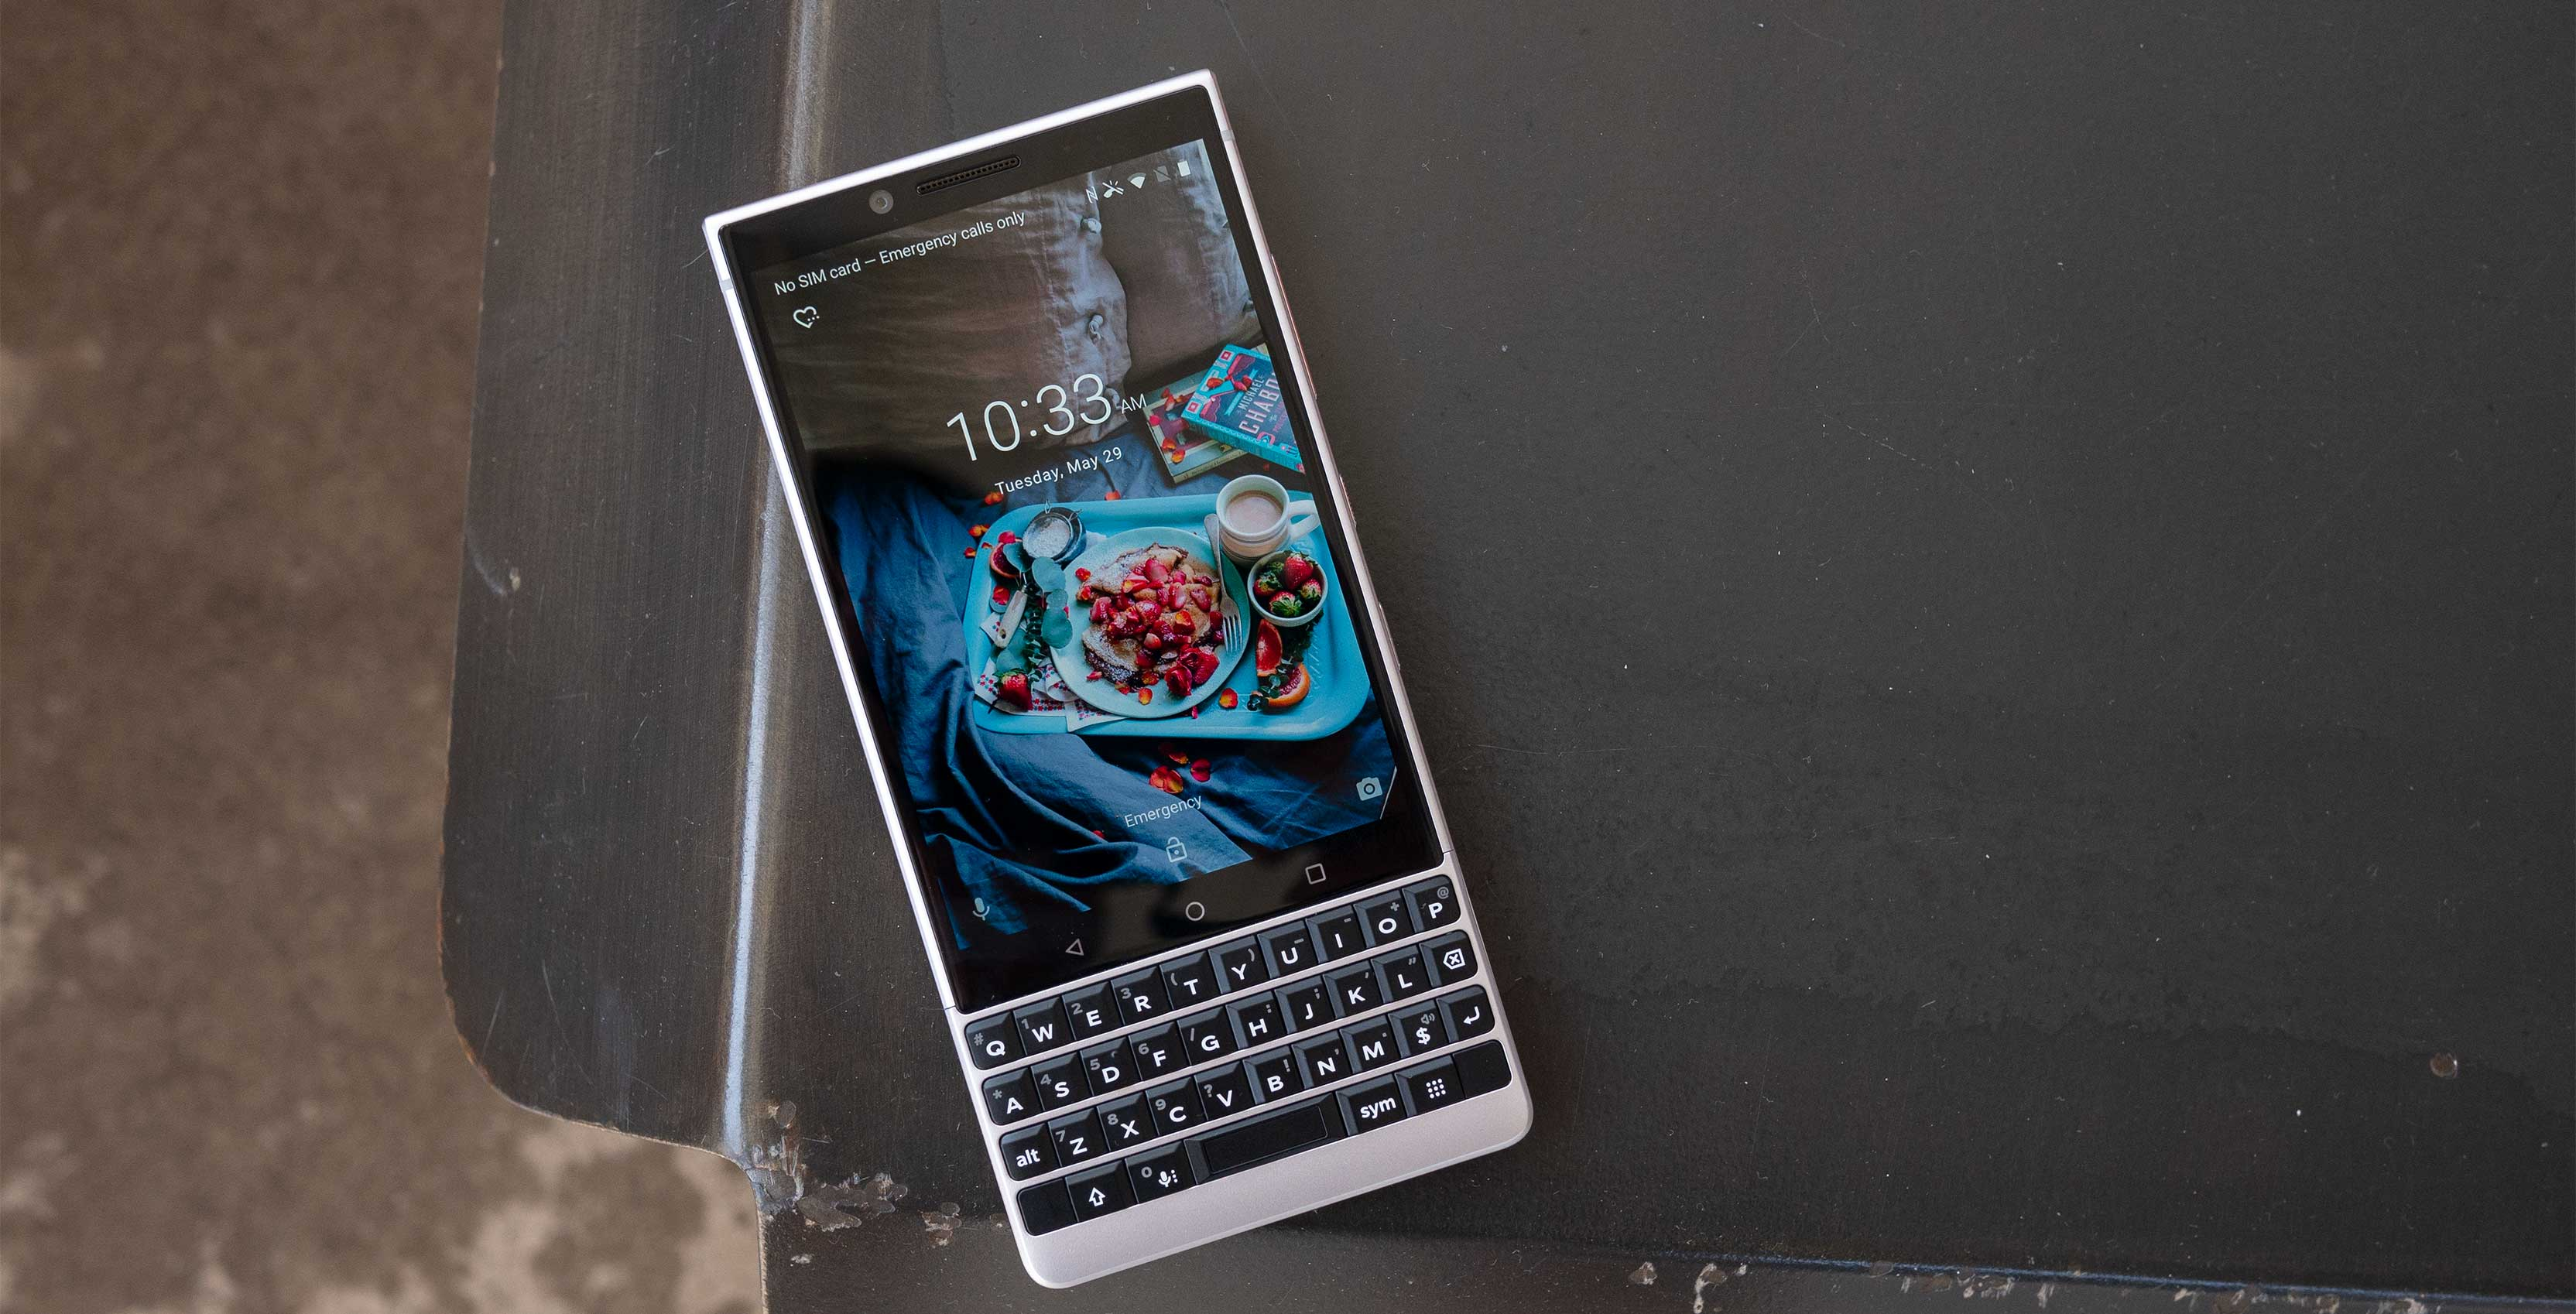 BlackBerry presented the new mobile business class